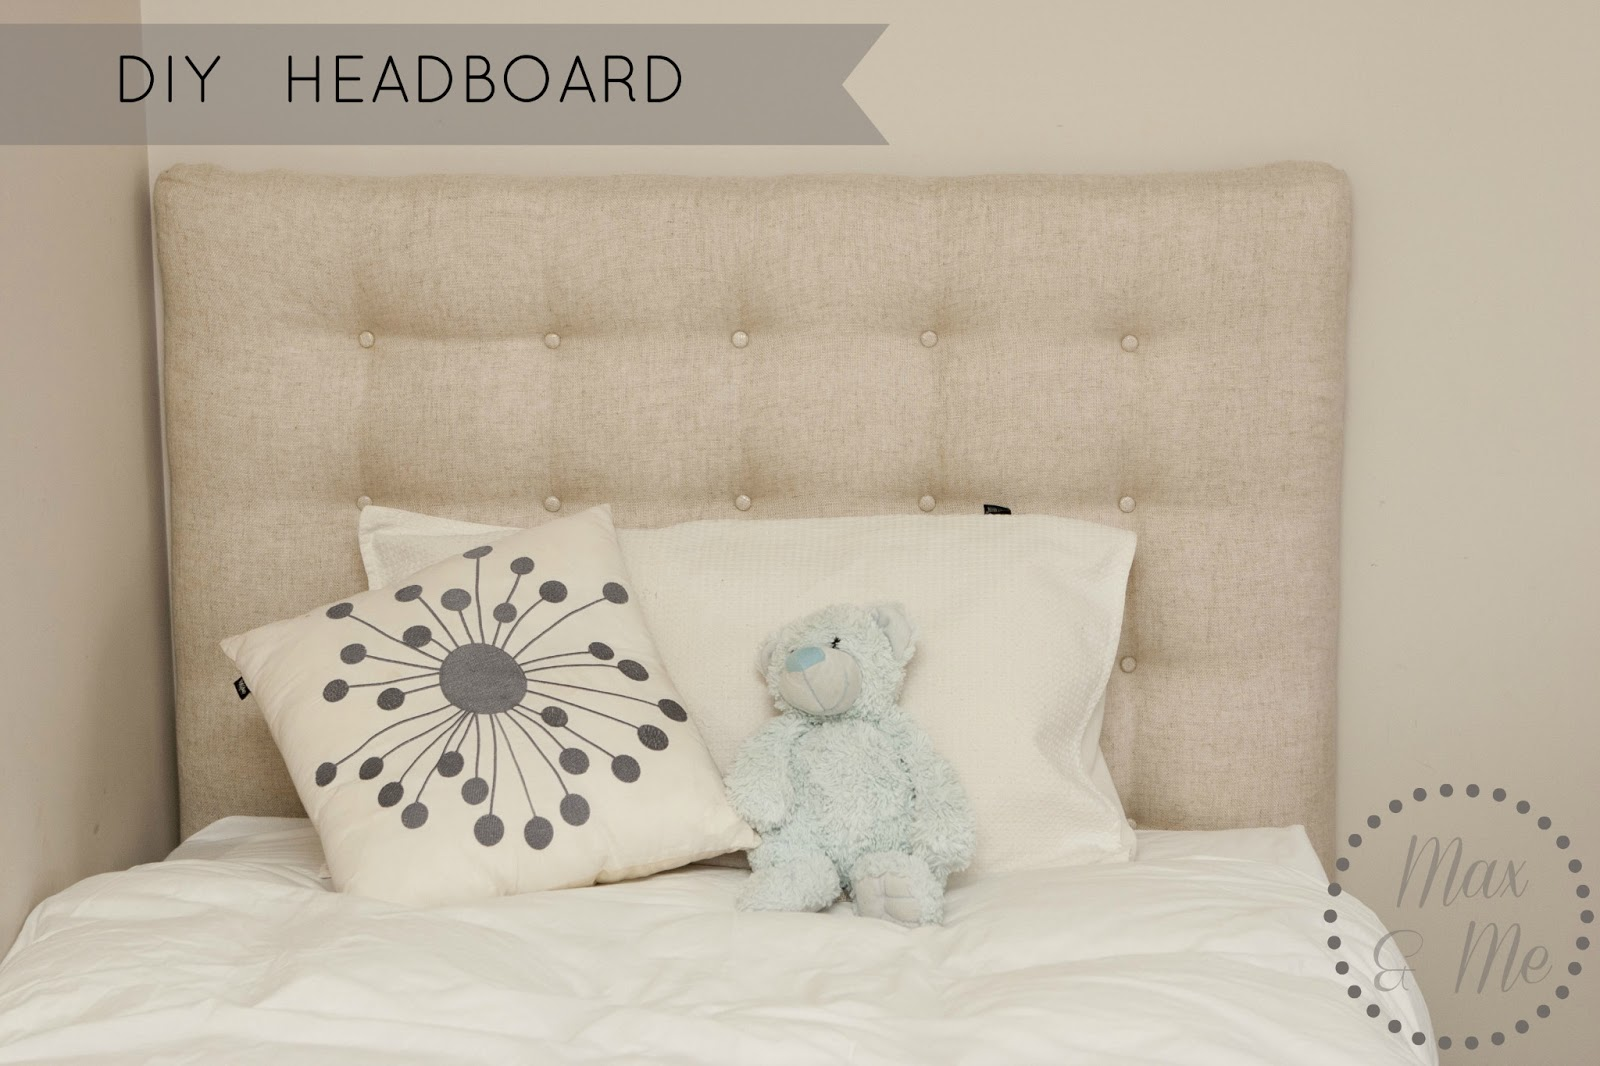 DIY Headboard and Bed Make-Over